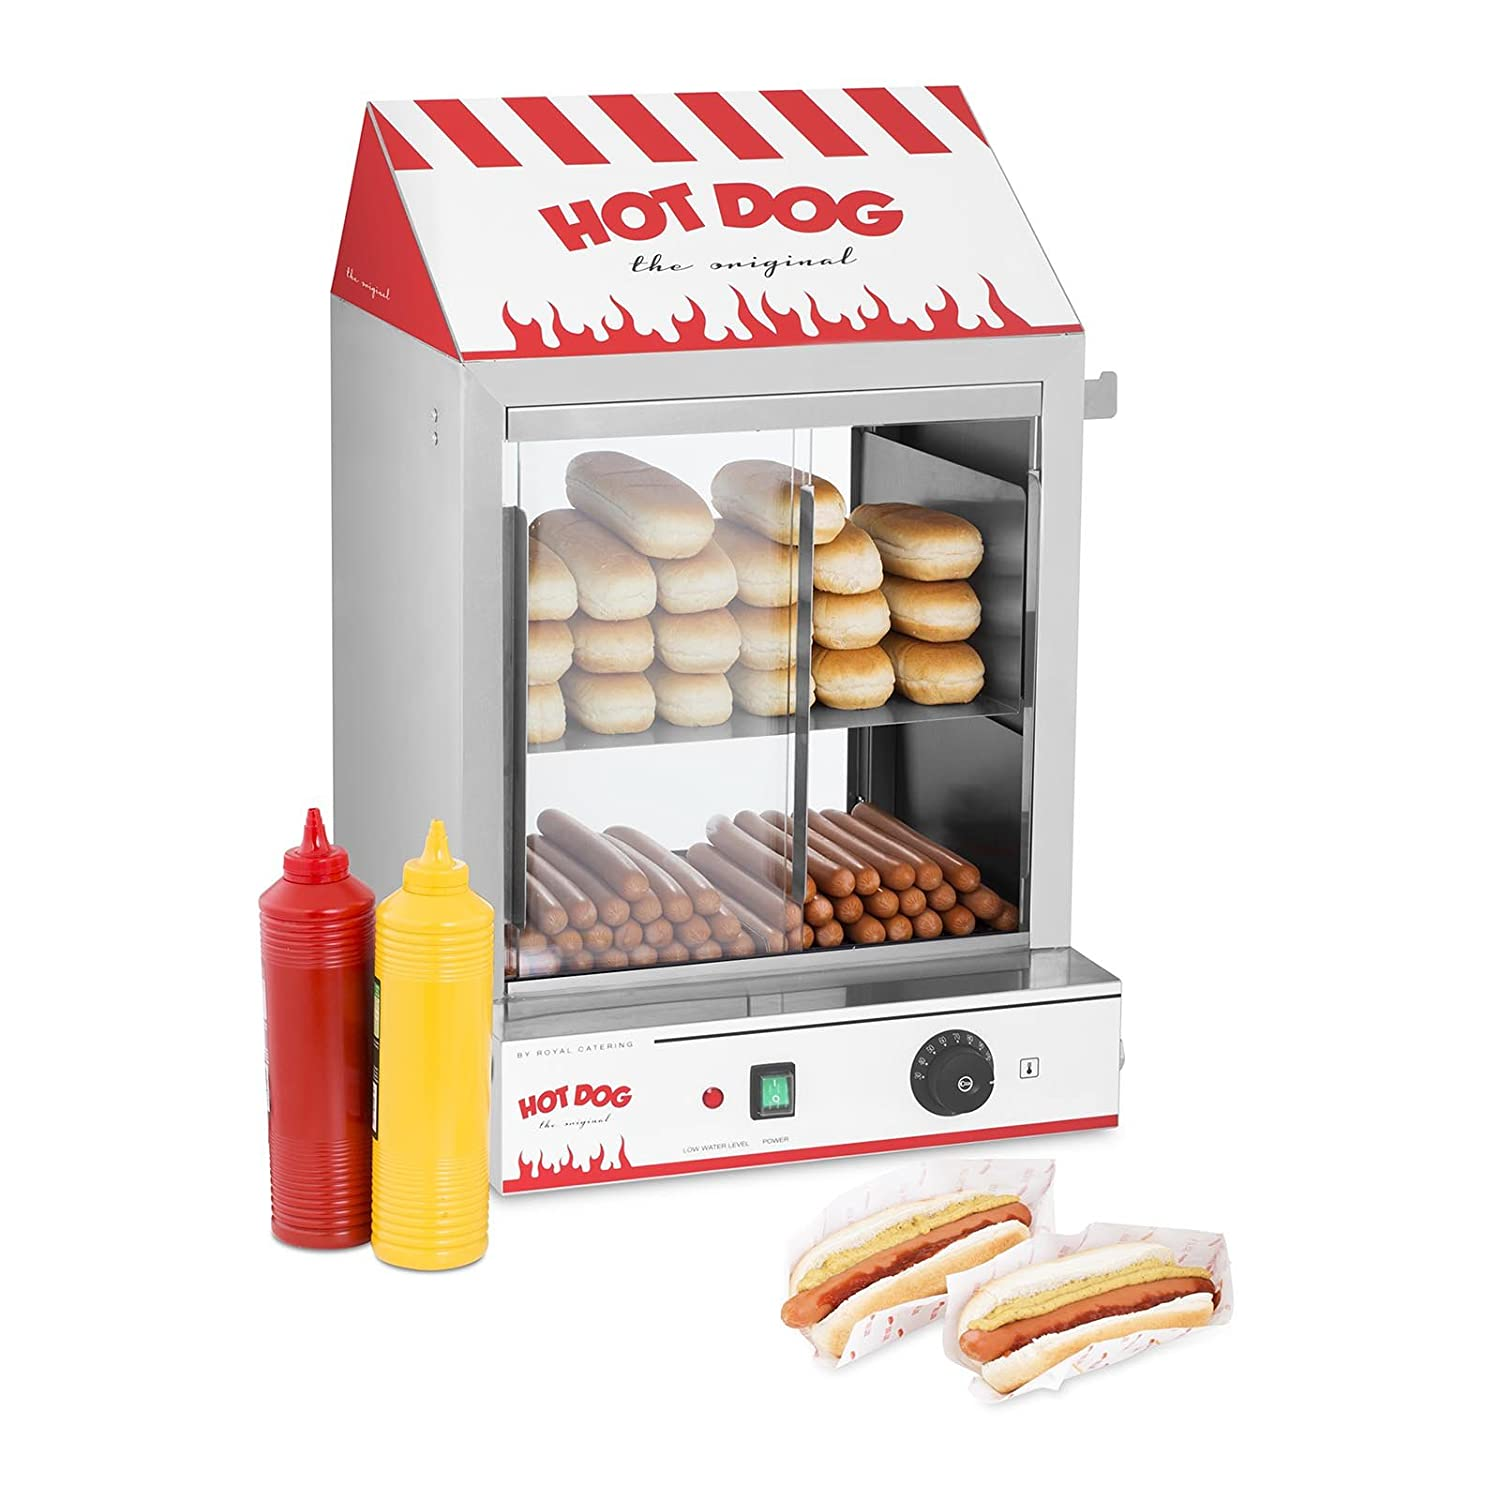 Capacity: 200 Sausages, 50 Buns, 2000 W, Stainless Steel, Temperature Range: 30-110/°C, Drain tap Royal Catering Hot Dog Steamer RCHW 2000